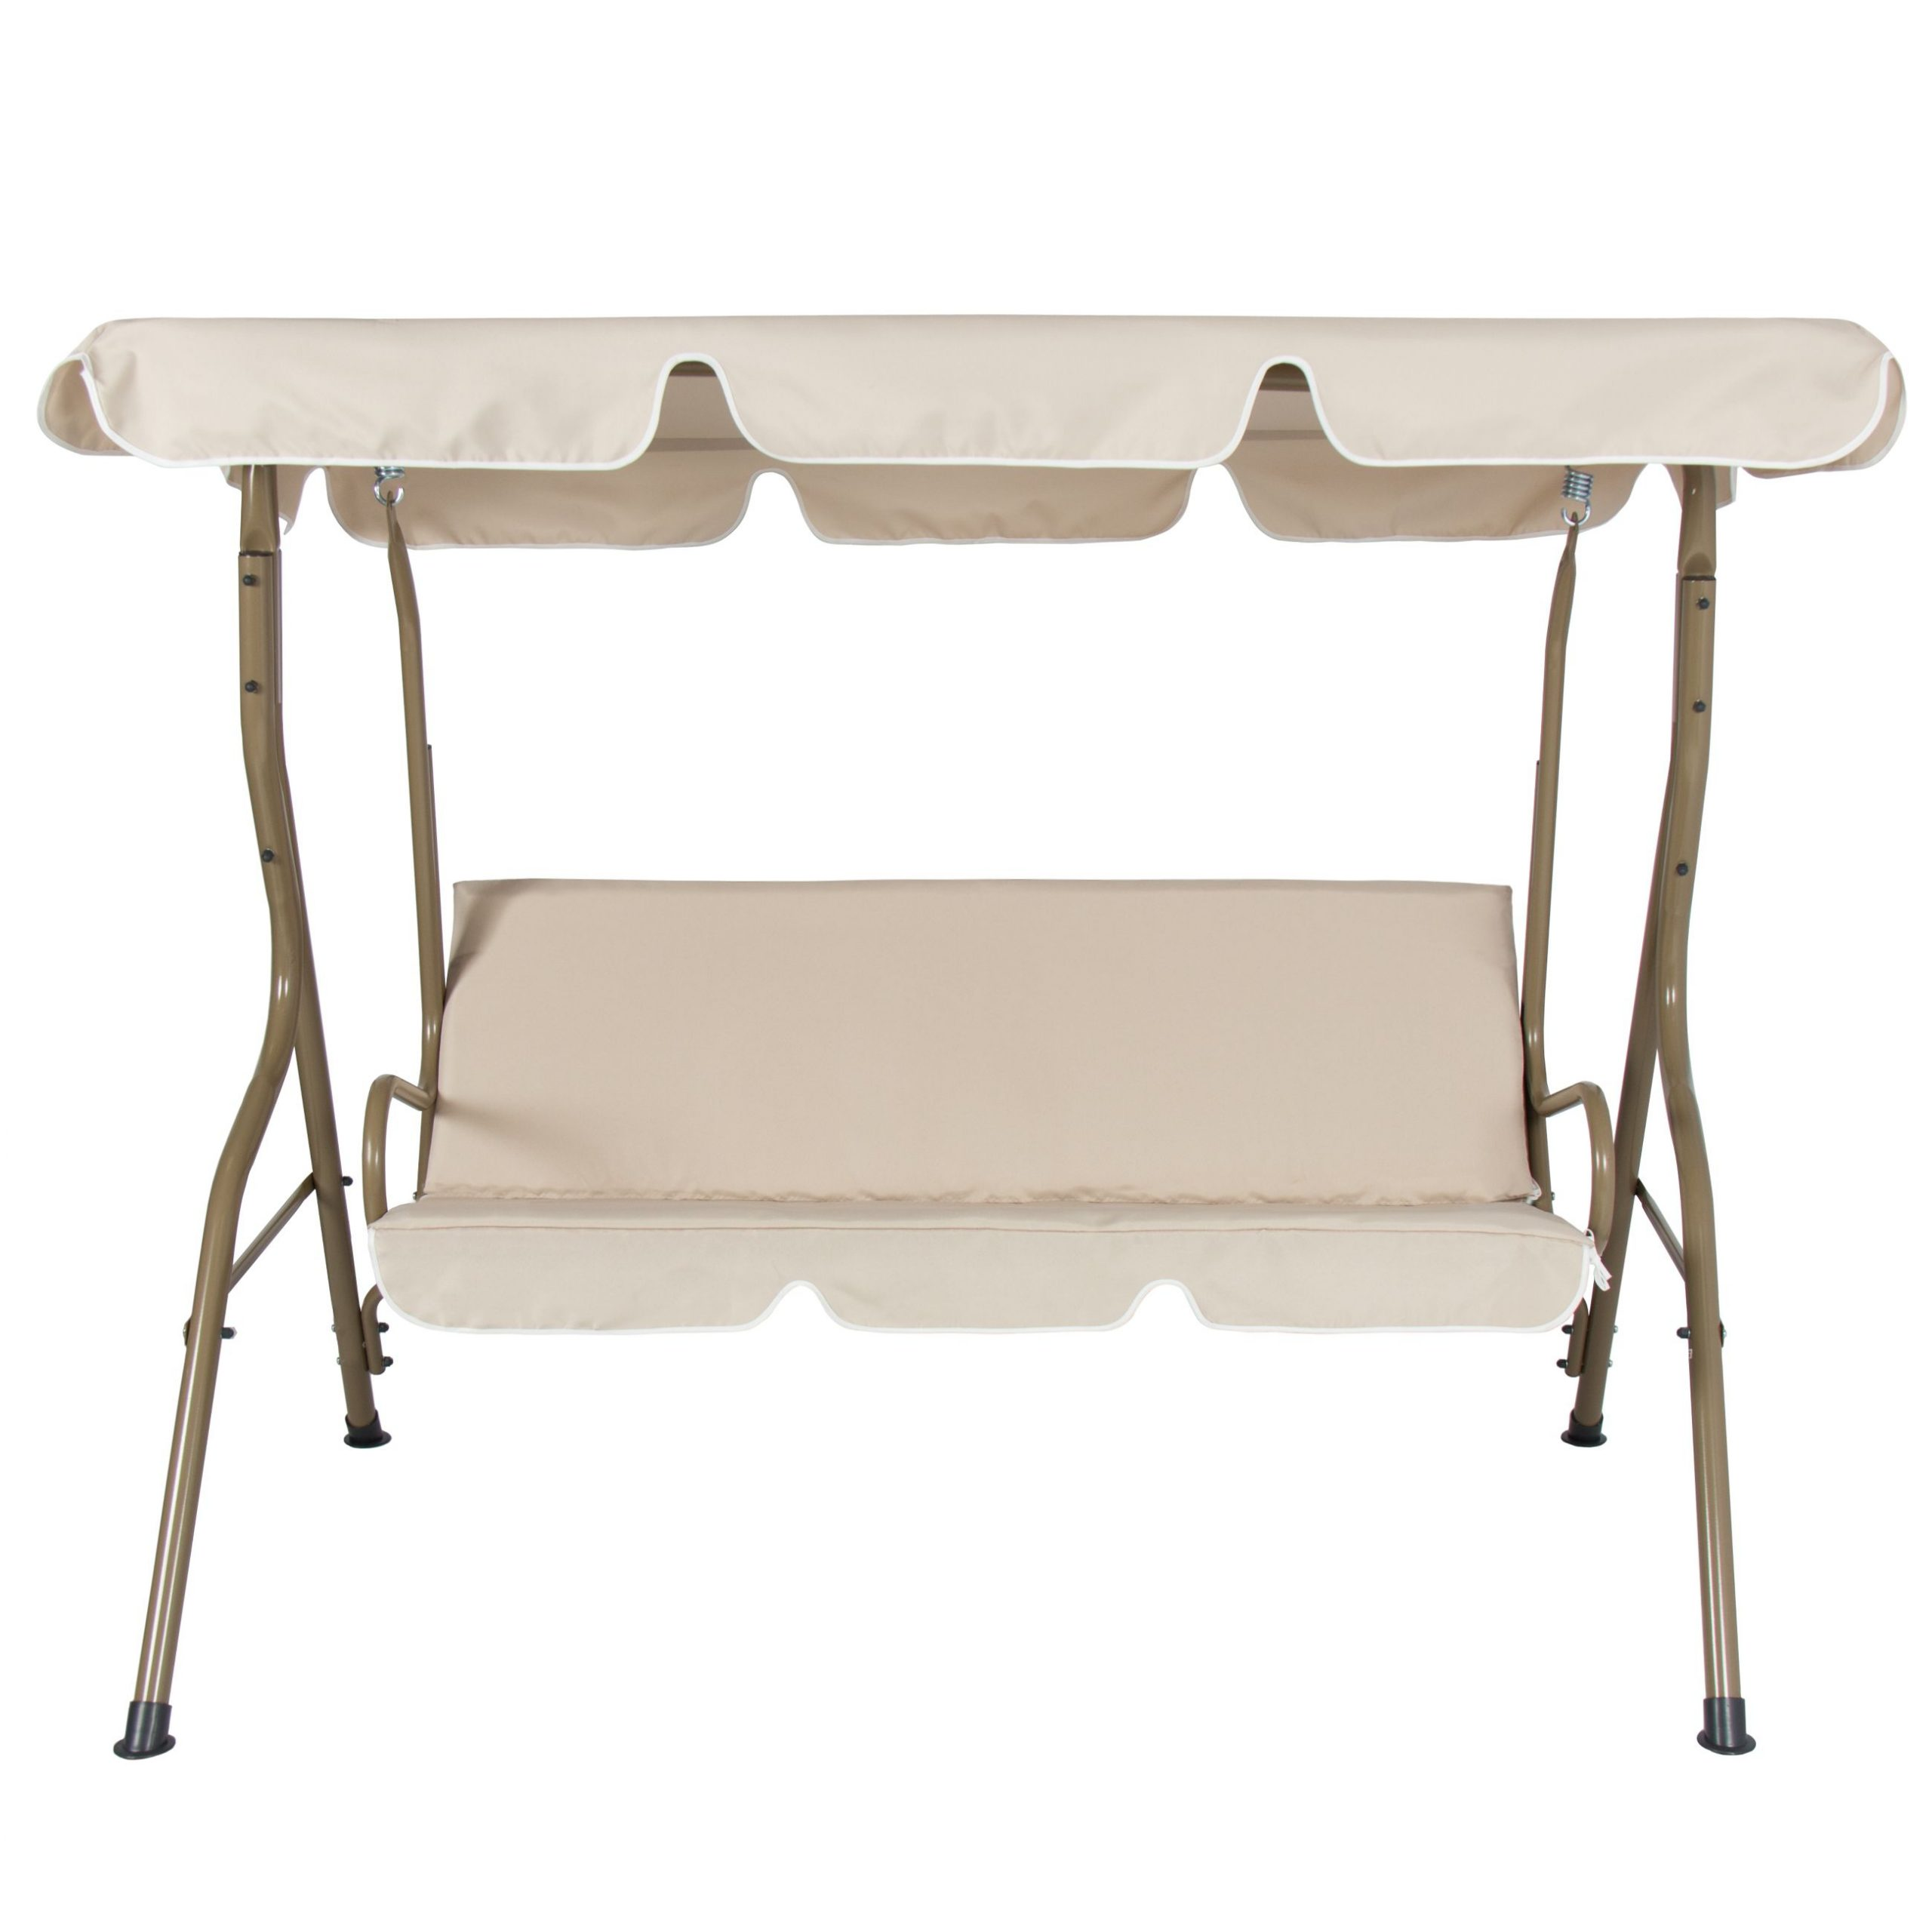 Pin On Women's Lingerie Curvy Regarding Favorite 2 Person Outdoor Convertible Canopy Swing Gliders With Removable Cushions Beige (View 16 of 30)